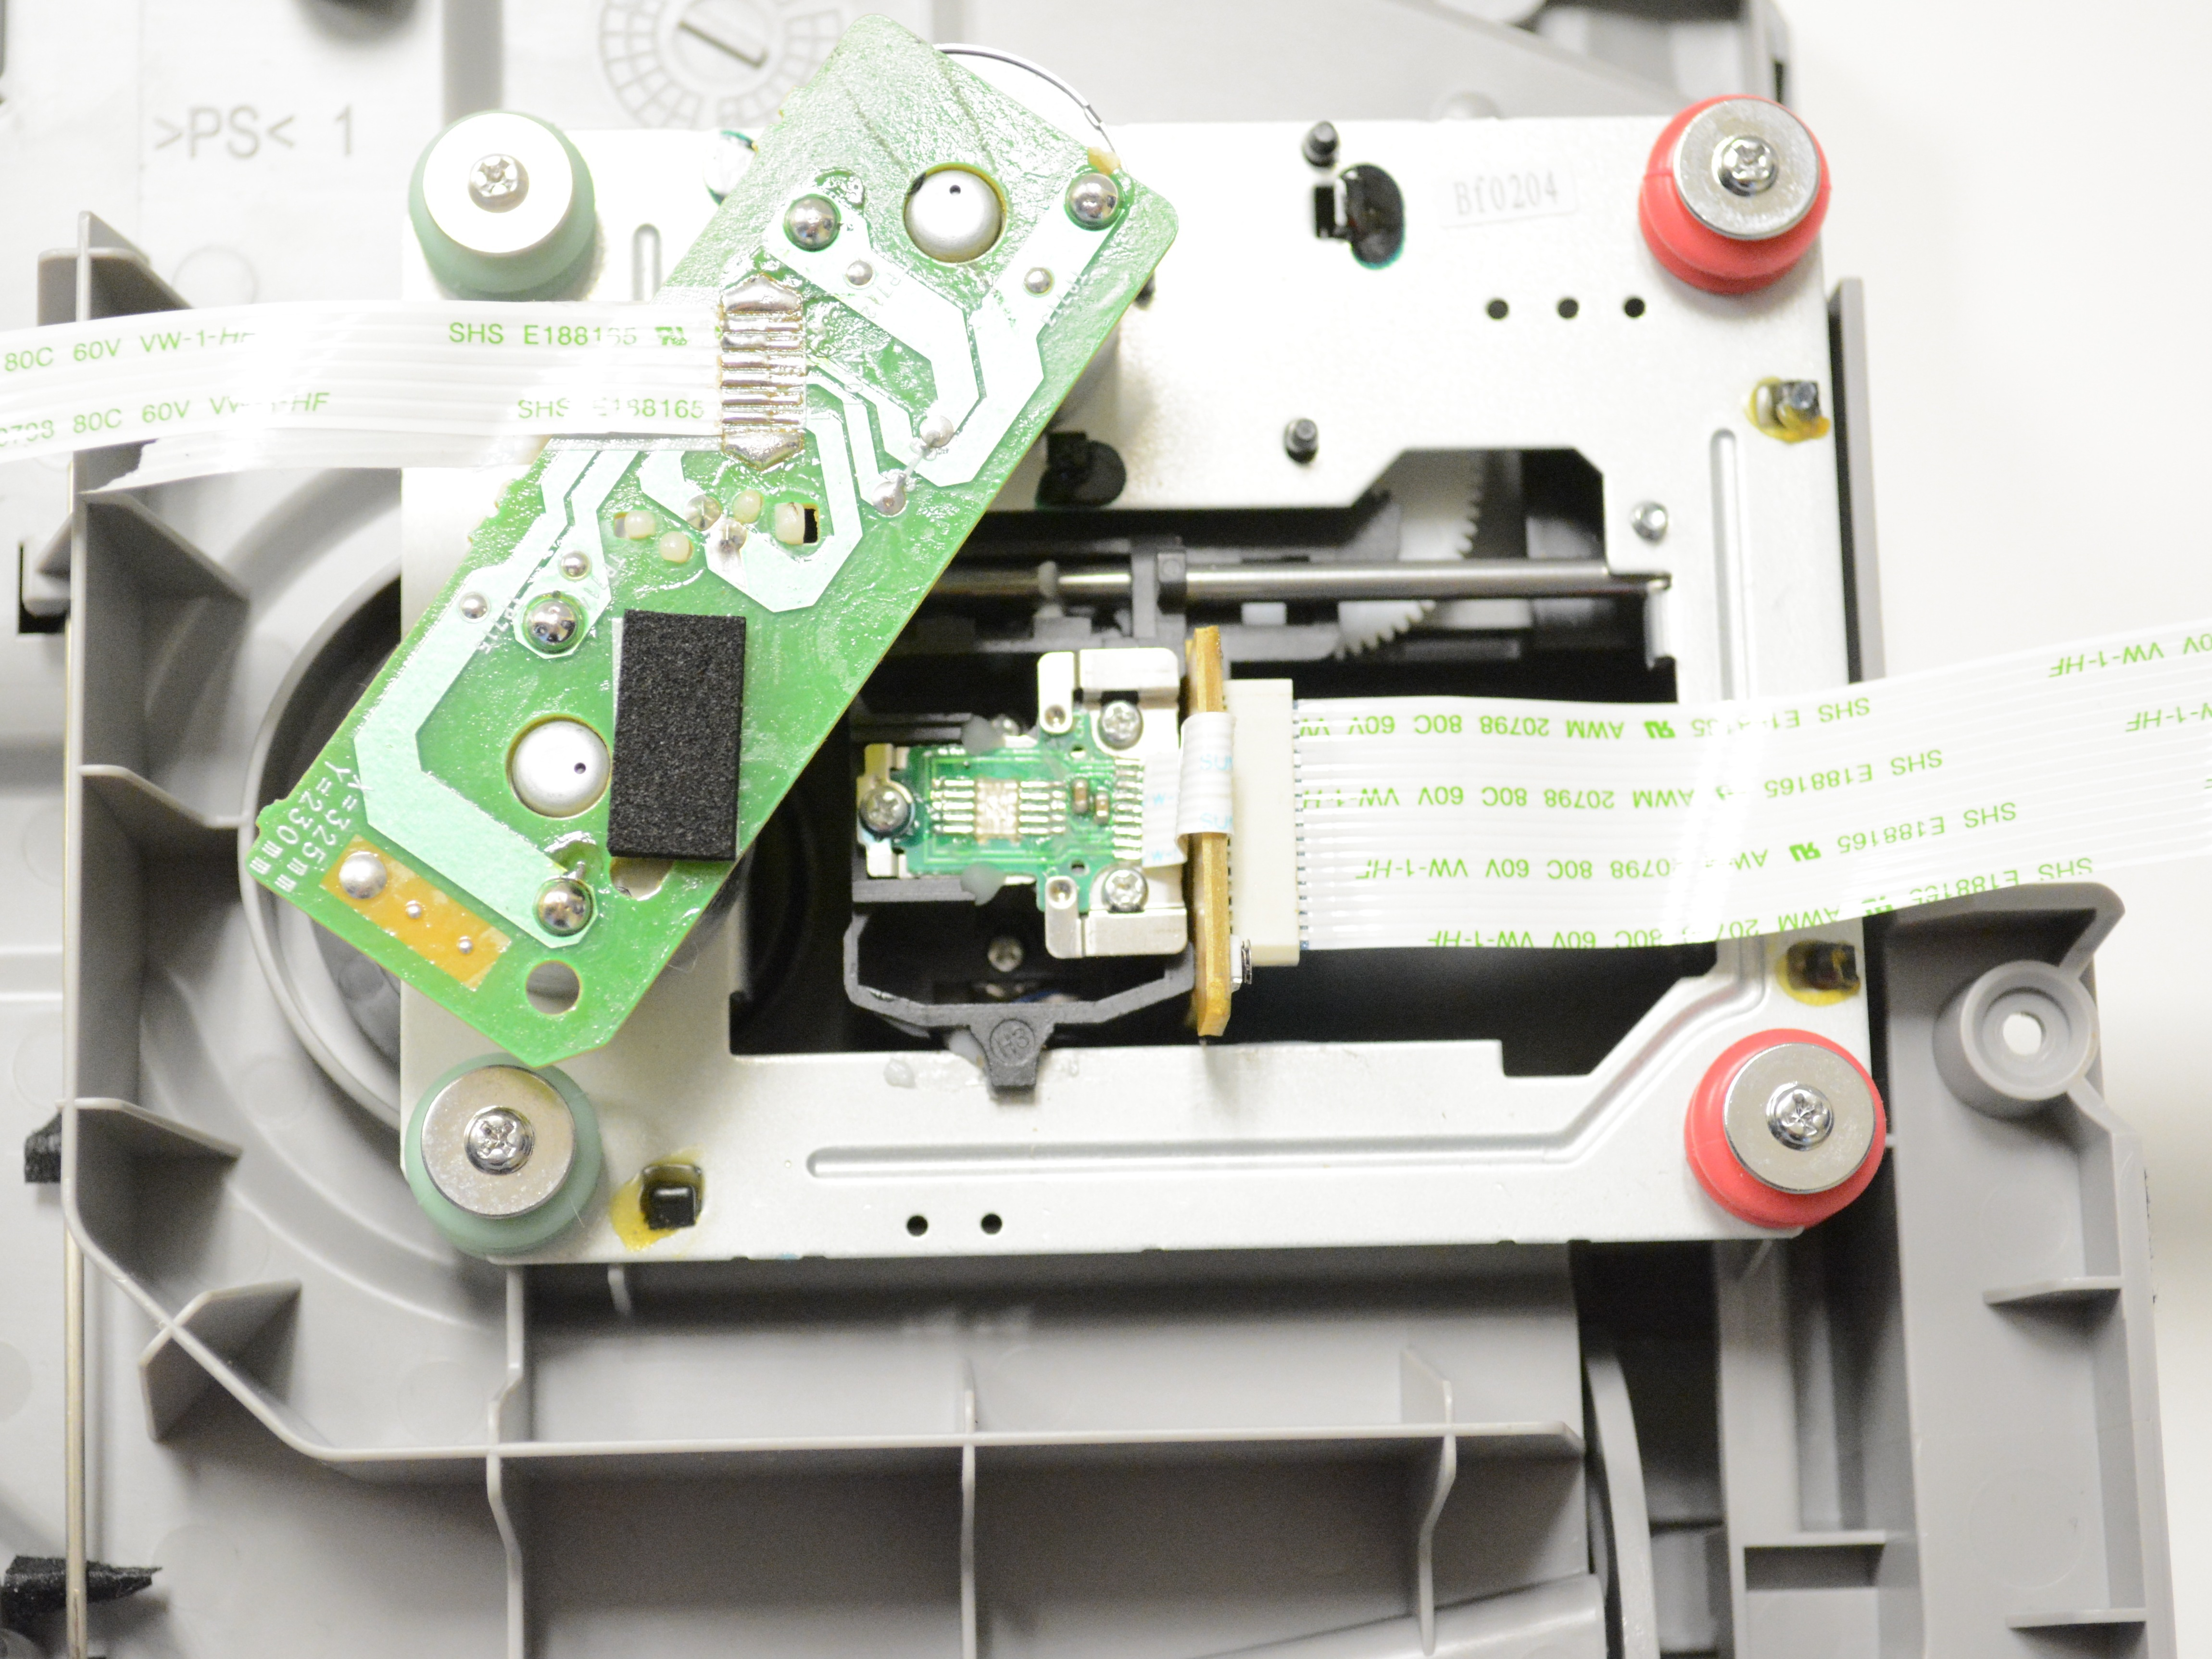 Sony Radio Cfd S05 Repair Ifixit Fm Am Compact Disc Player Wiring Diagram Optical Pickup Unit